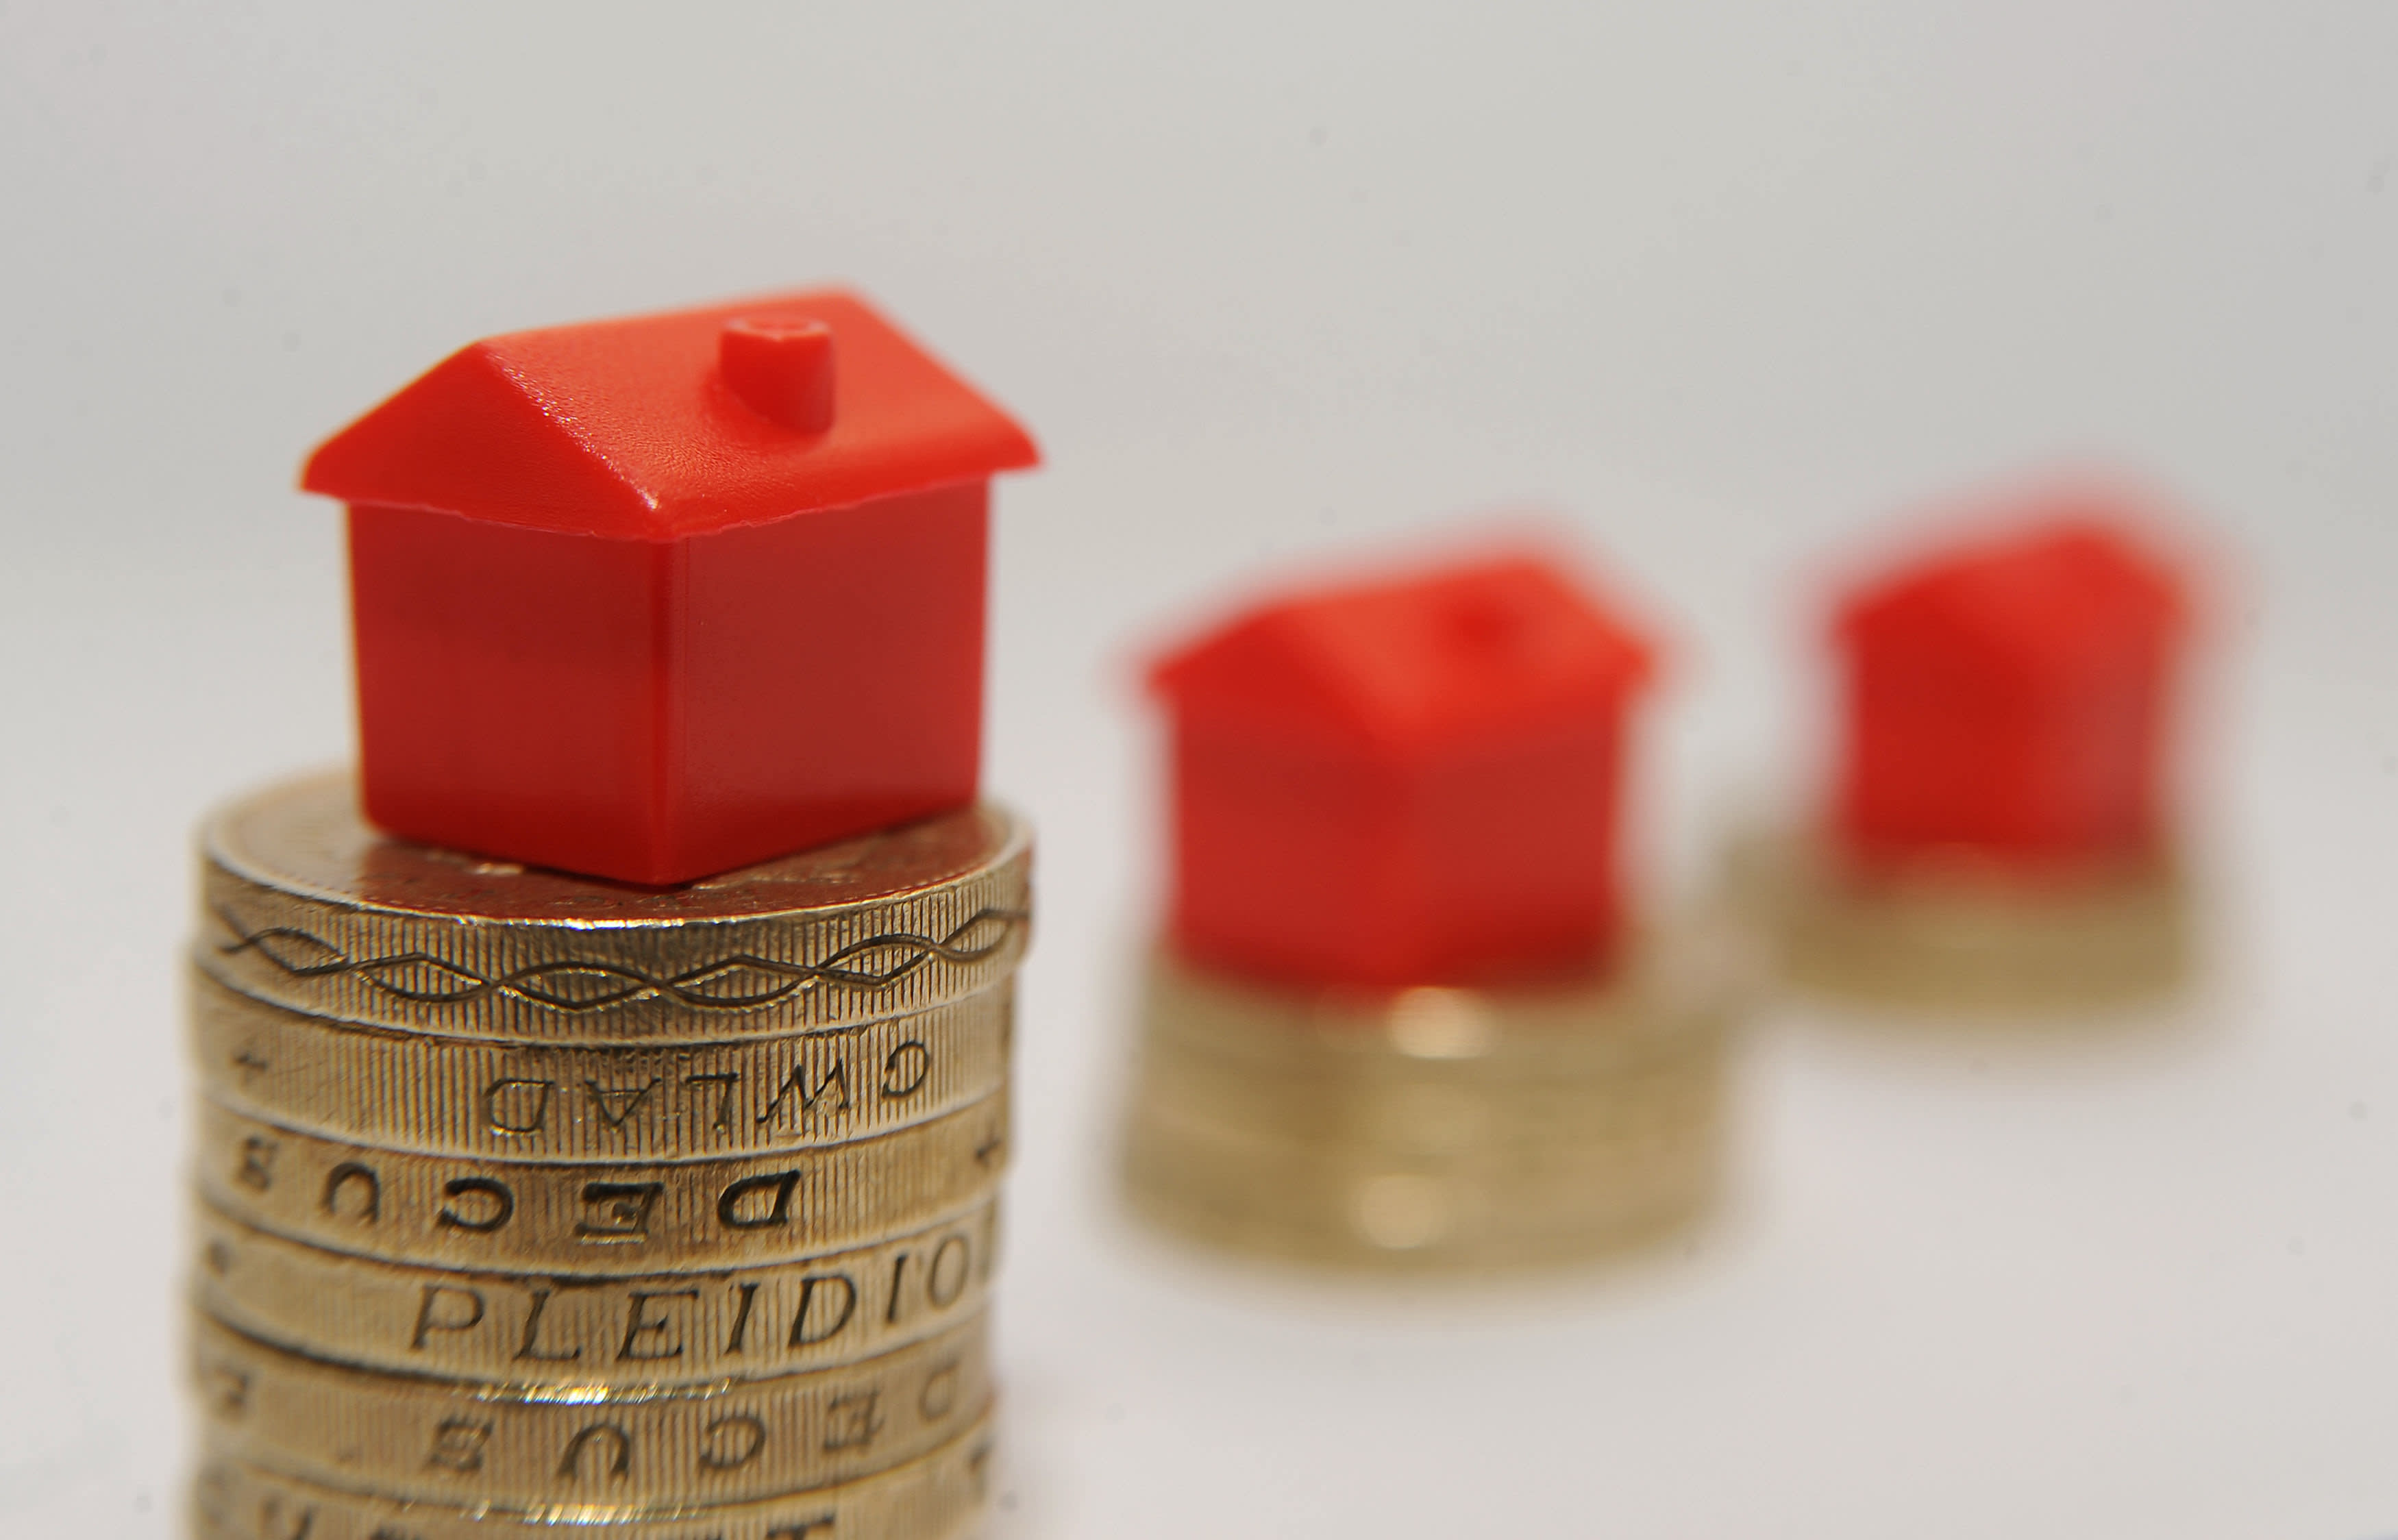 Landlords to feel effects of buy-to-let changes